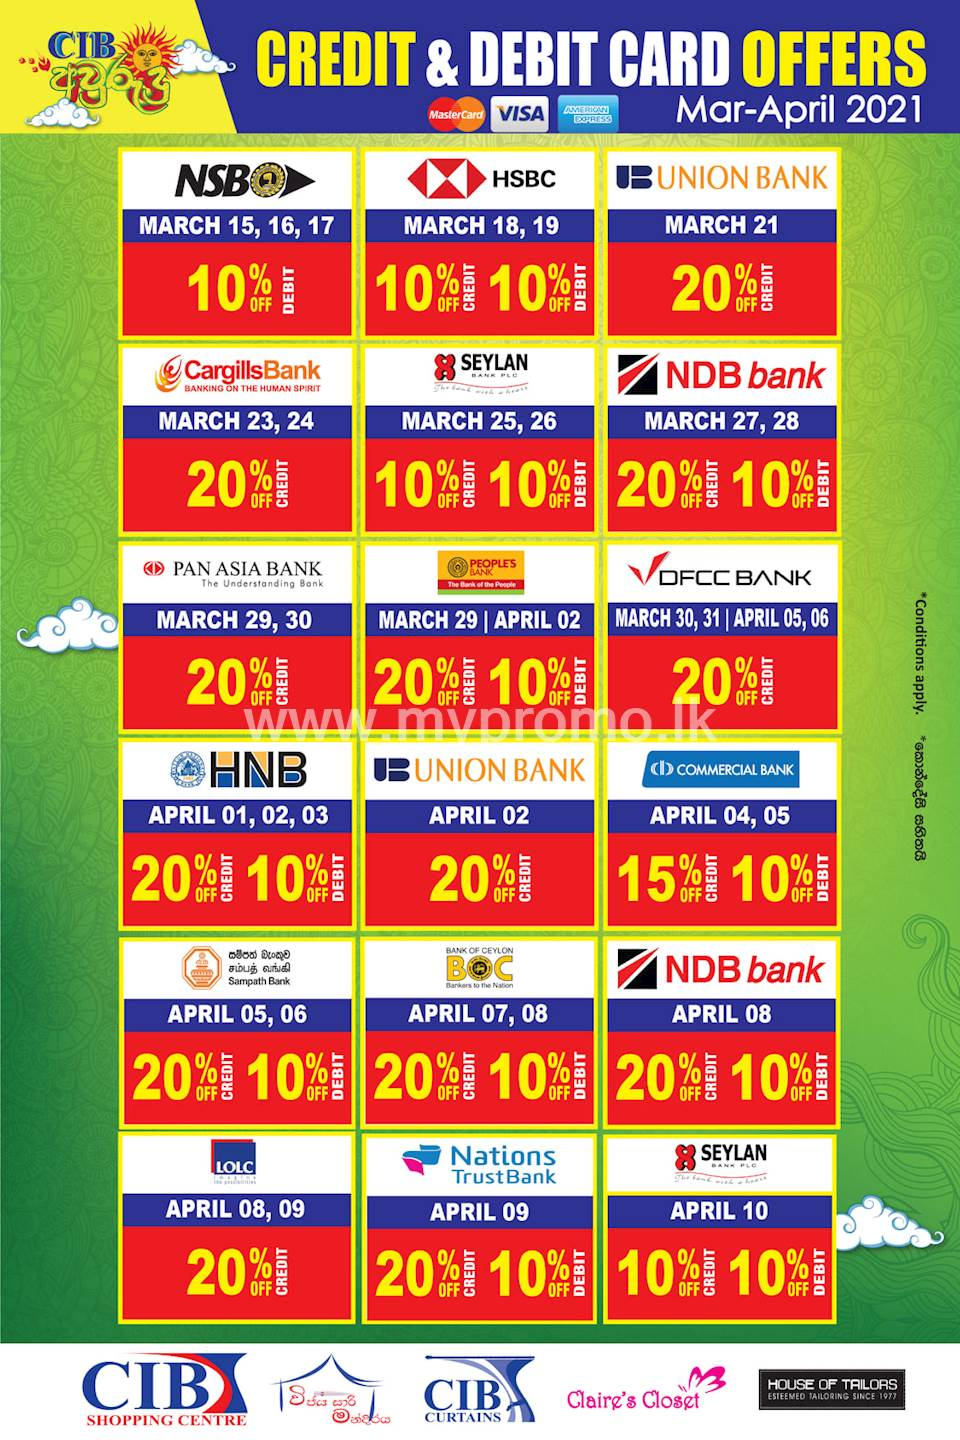 Avurudu 2021 Offers for Credit and Debit Cards at CIB Shopping Center